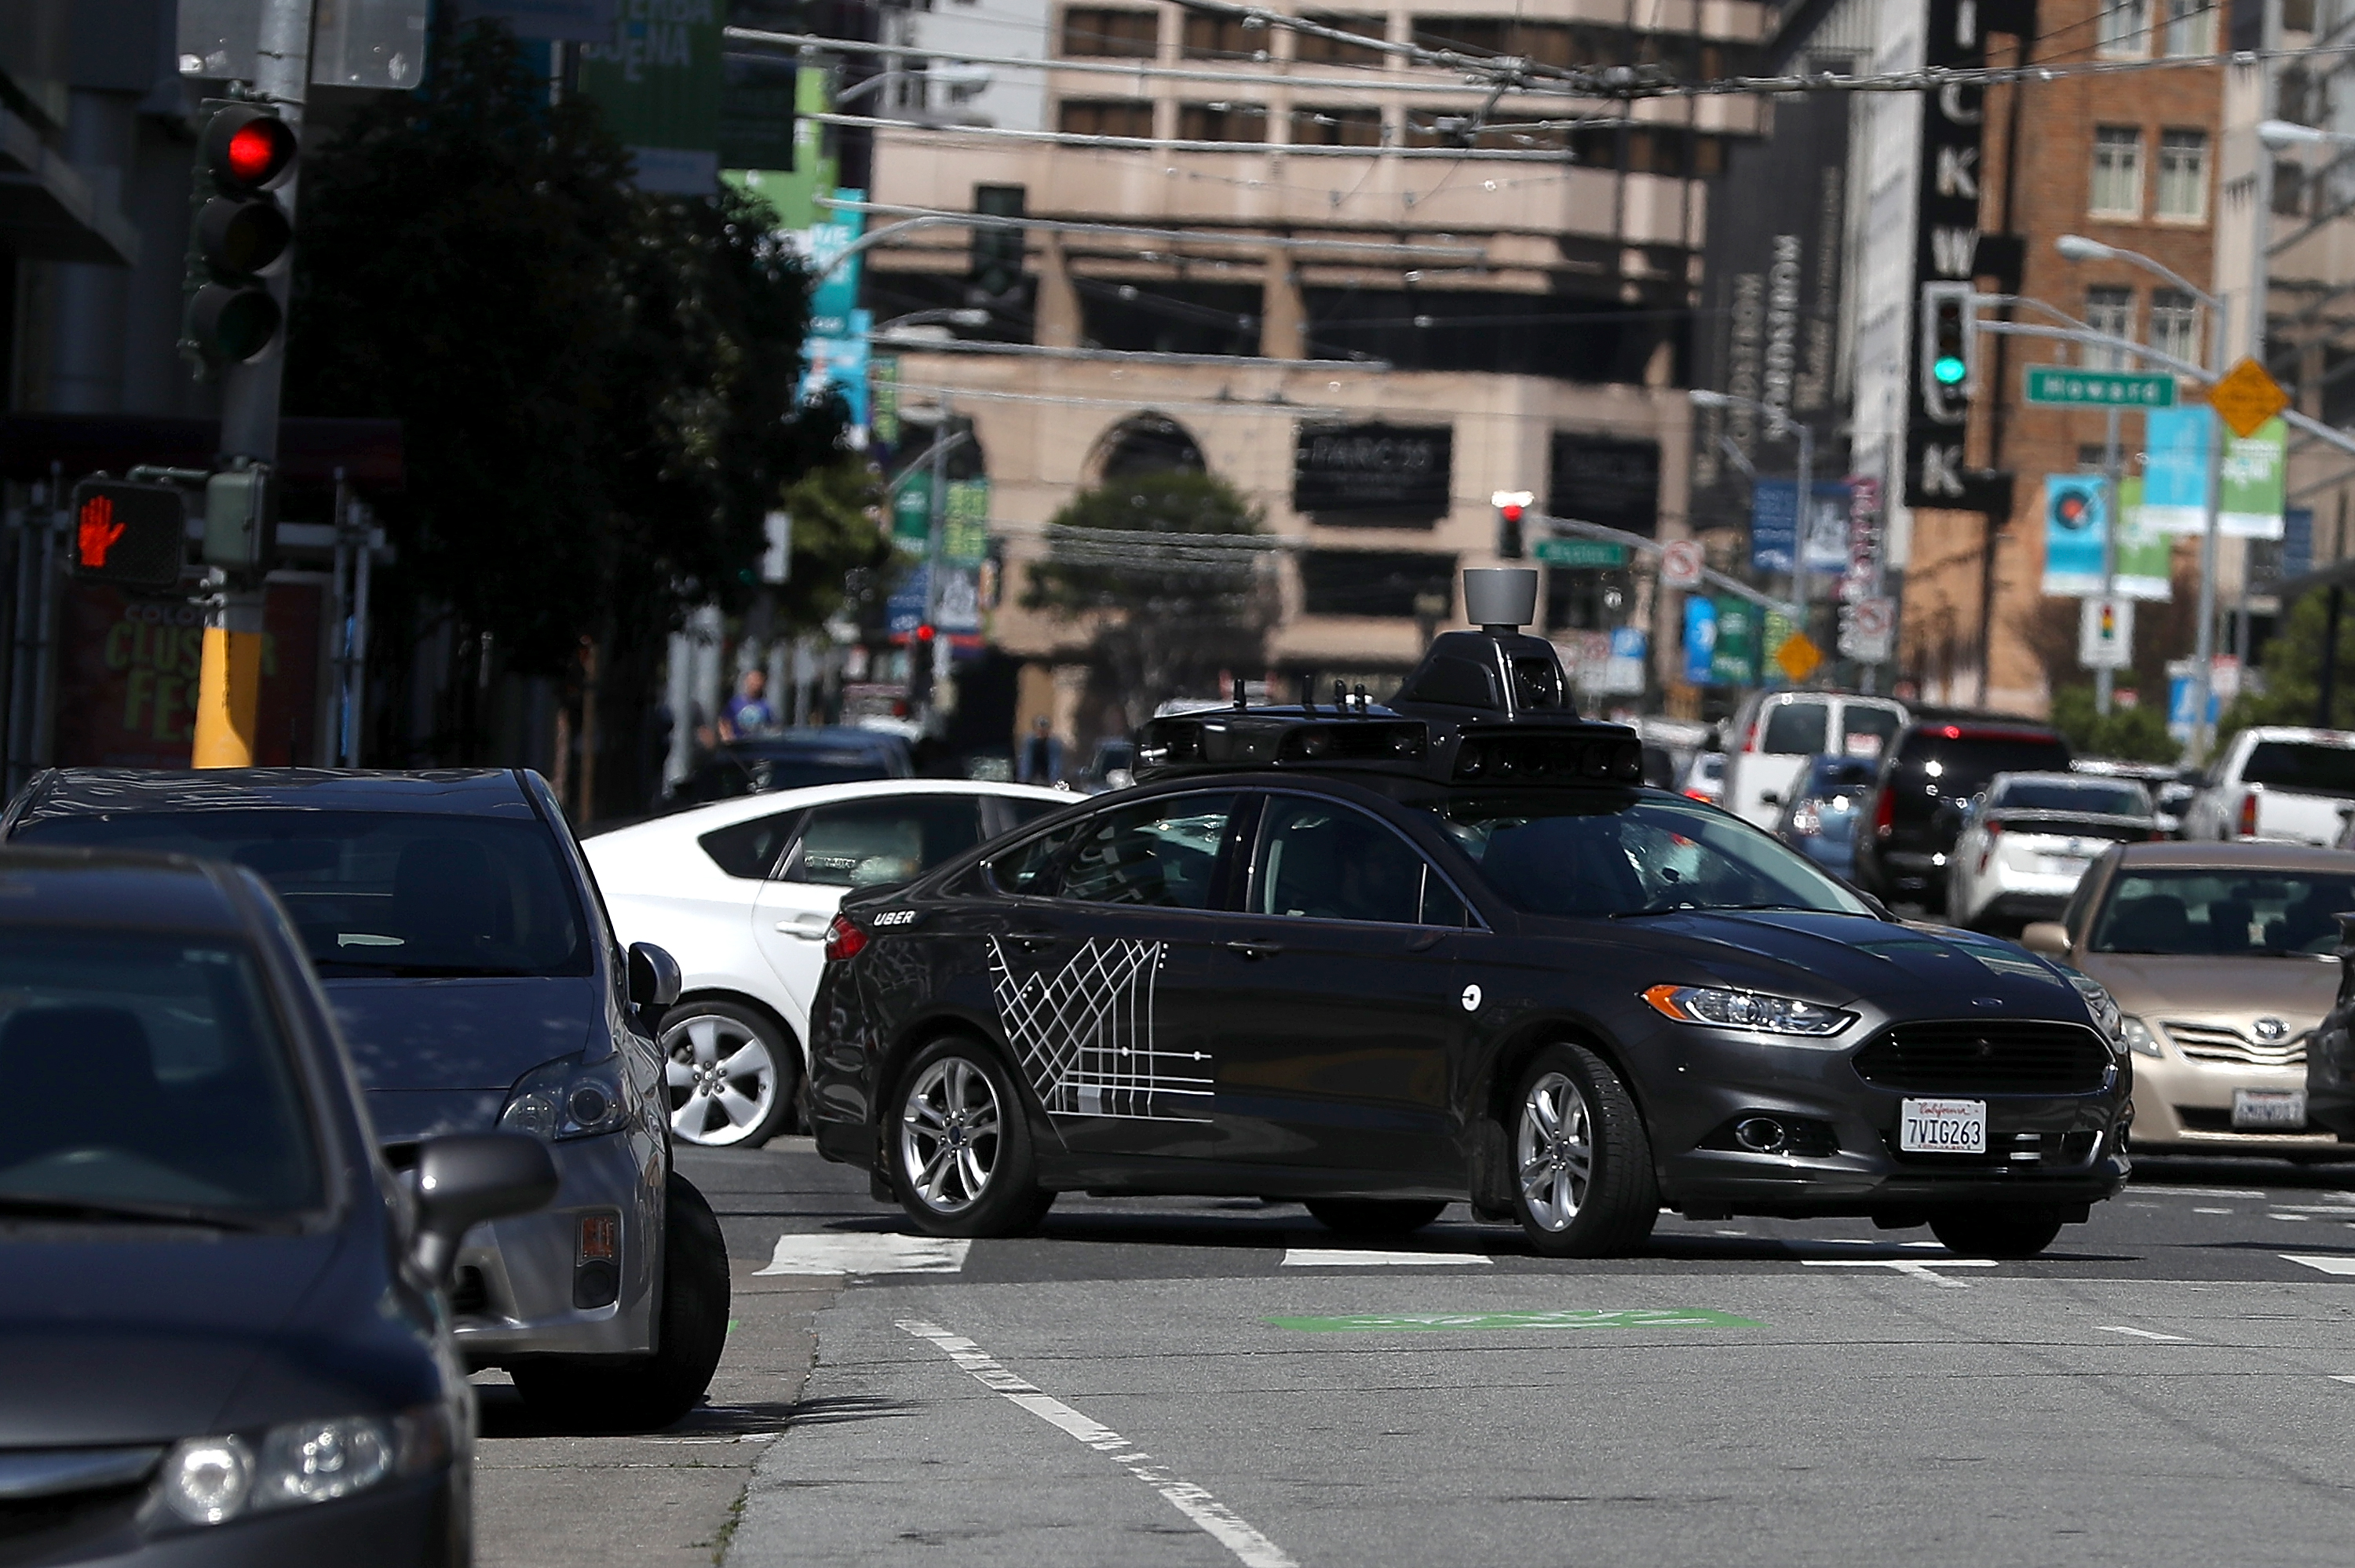 Federal report Self driving car in fatal Uber crash failed to recognize pedestrian